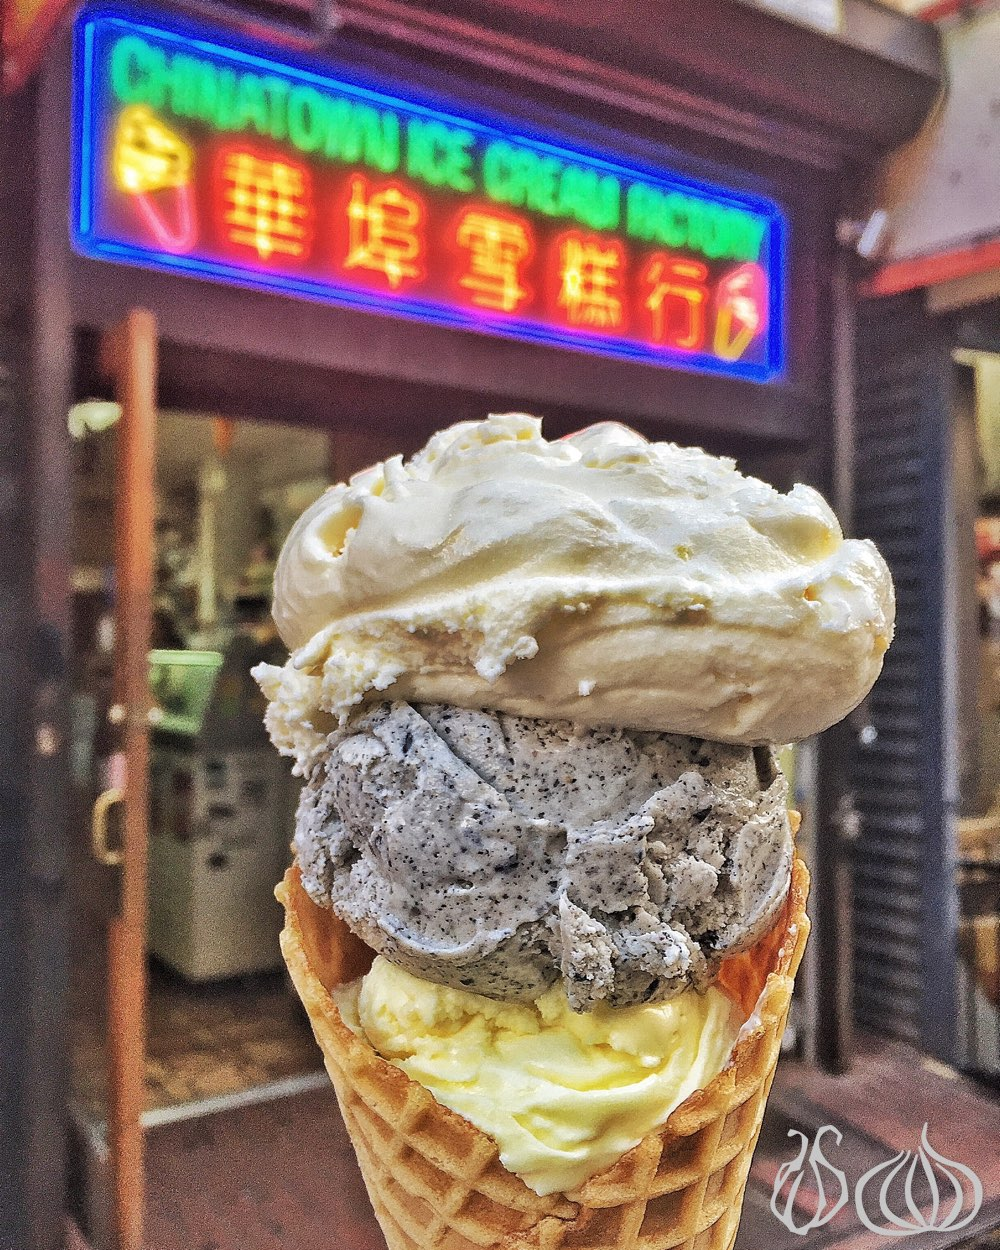 chinatown-ice-cream-factory-new-york222015-10-31-04-49-18